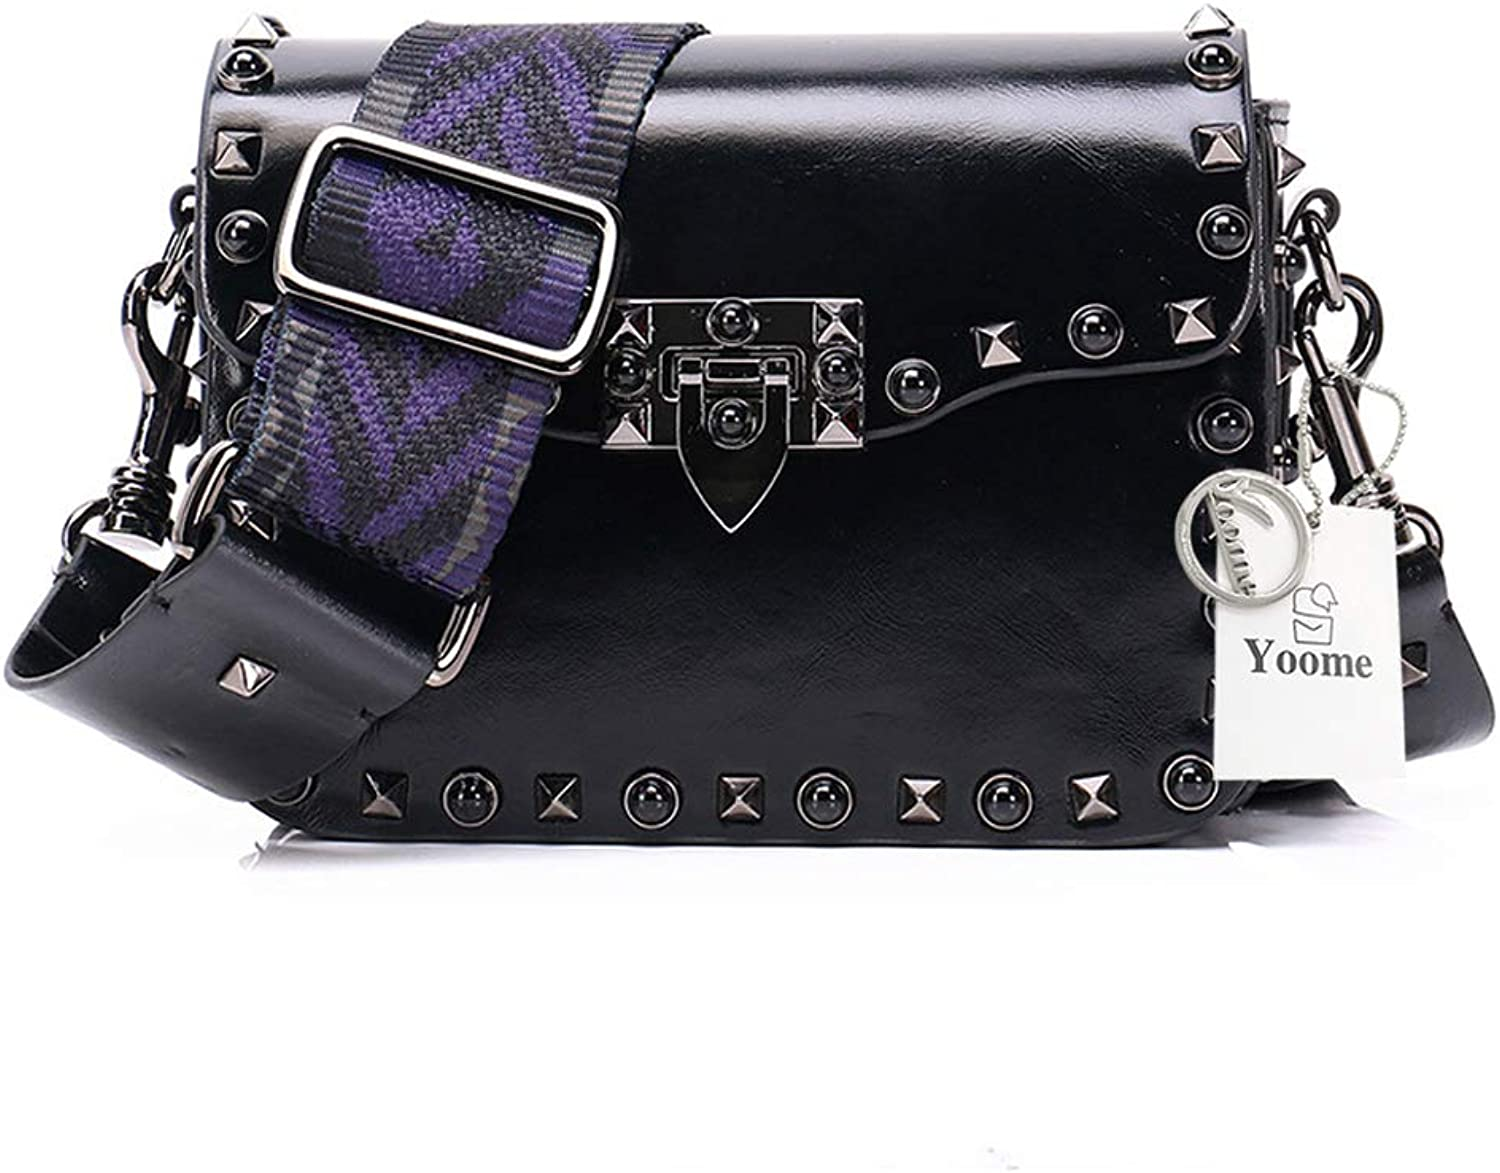 Yoome Small Rivets Shoulder Bag for Women Cowhide Crossbody Bag Messenger Purse